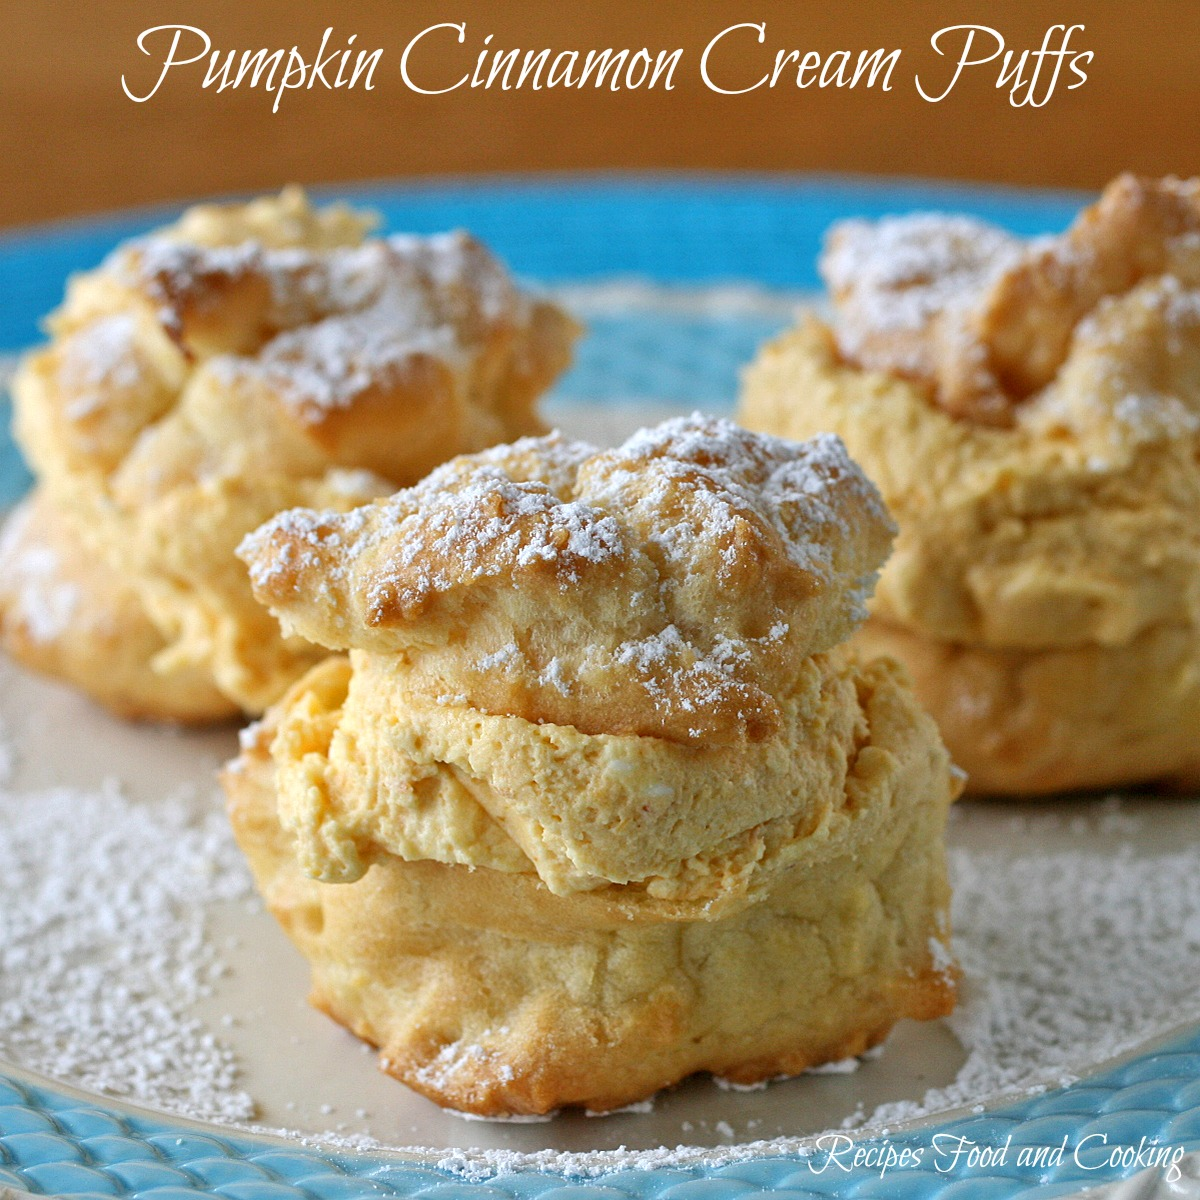 Pumpkin Cinnamon Cream Puffs